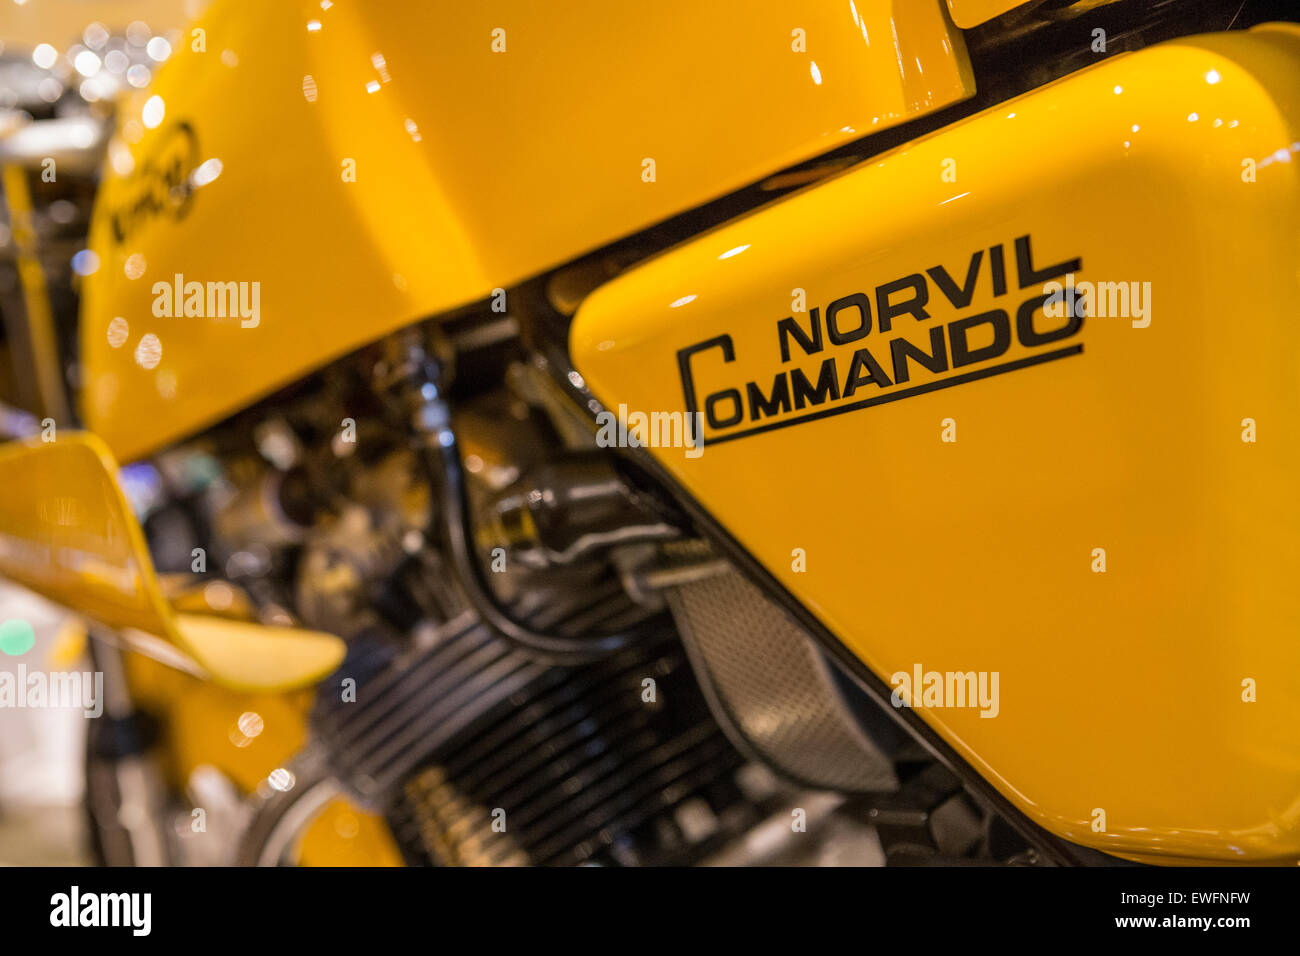 Norton Commando High Resolution Stock Photography And Images Alamy